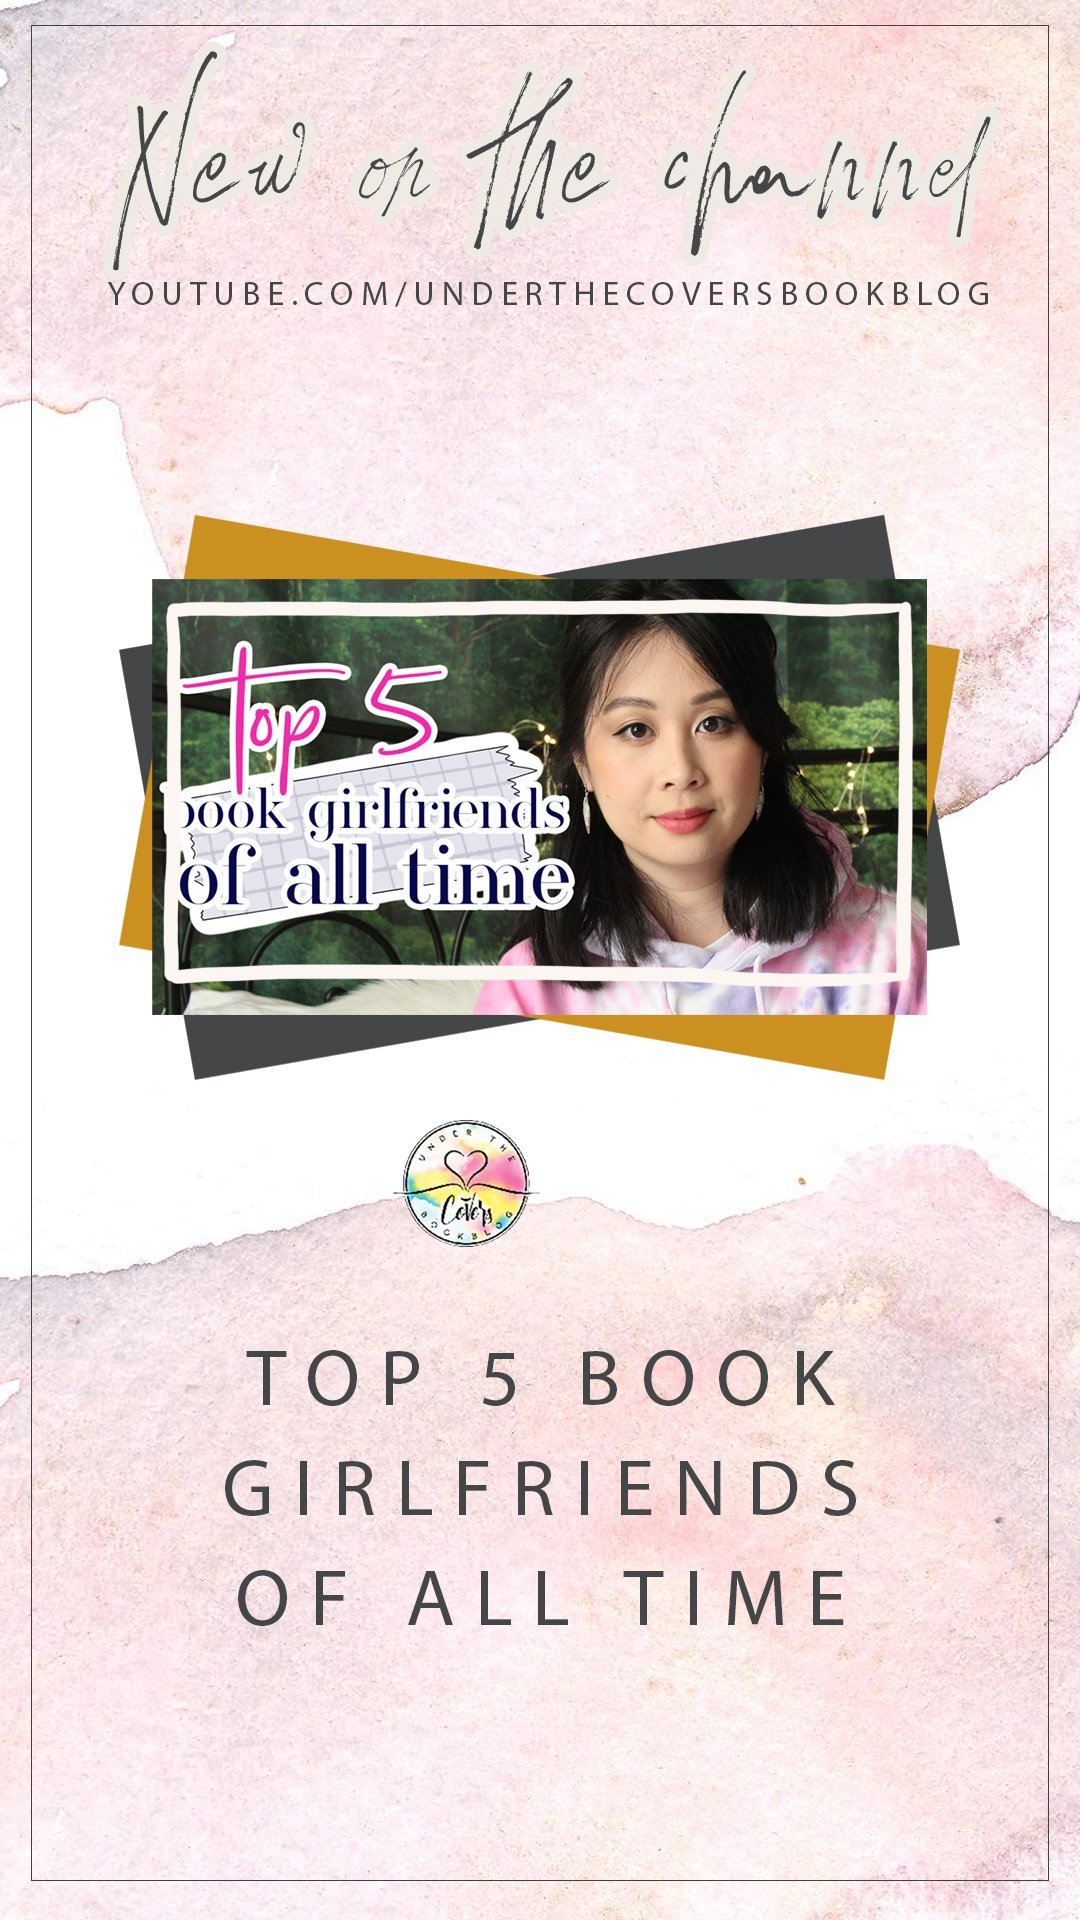 Annie\'s Top 5 Book Girlfriends of All Time